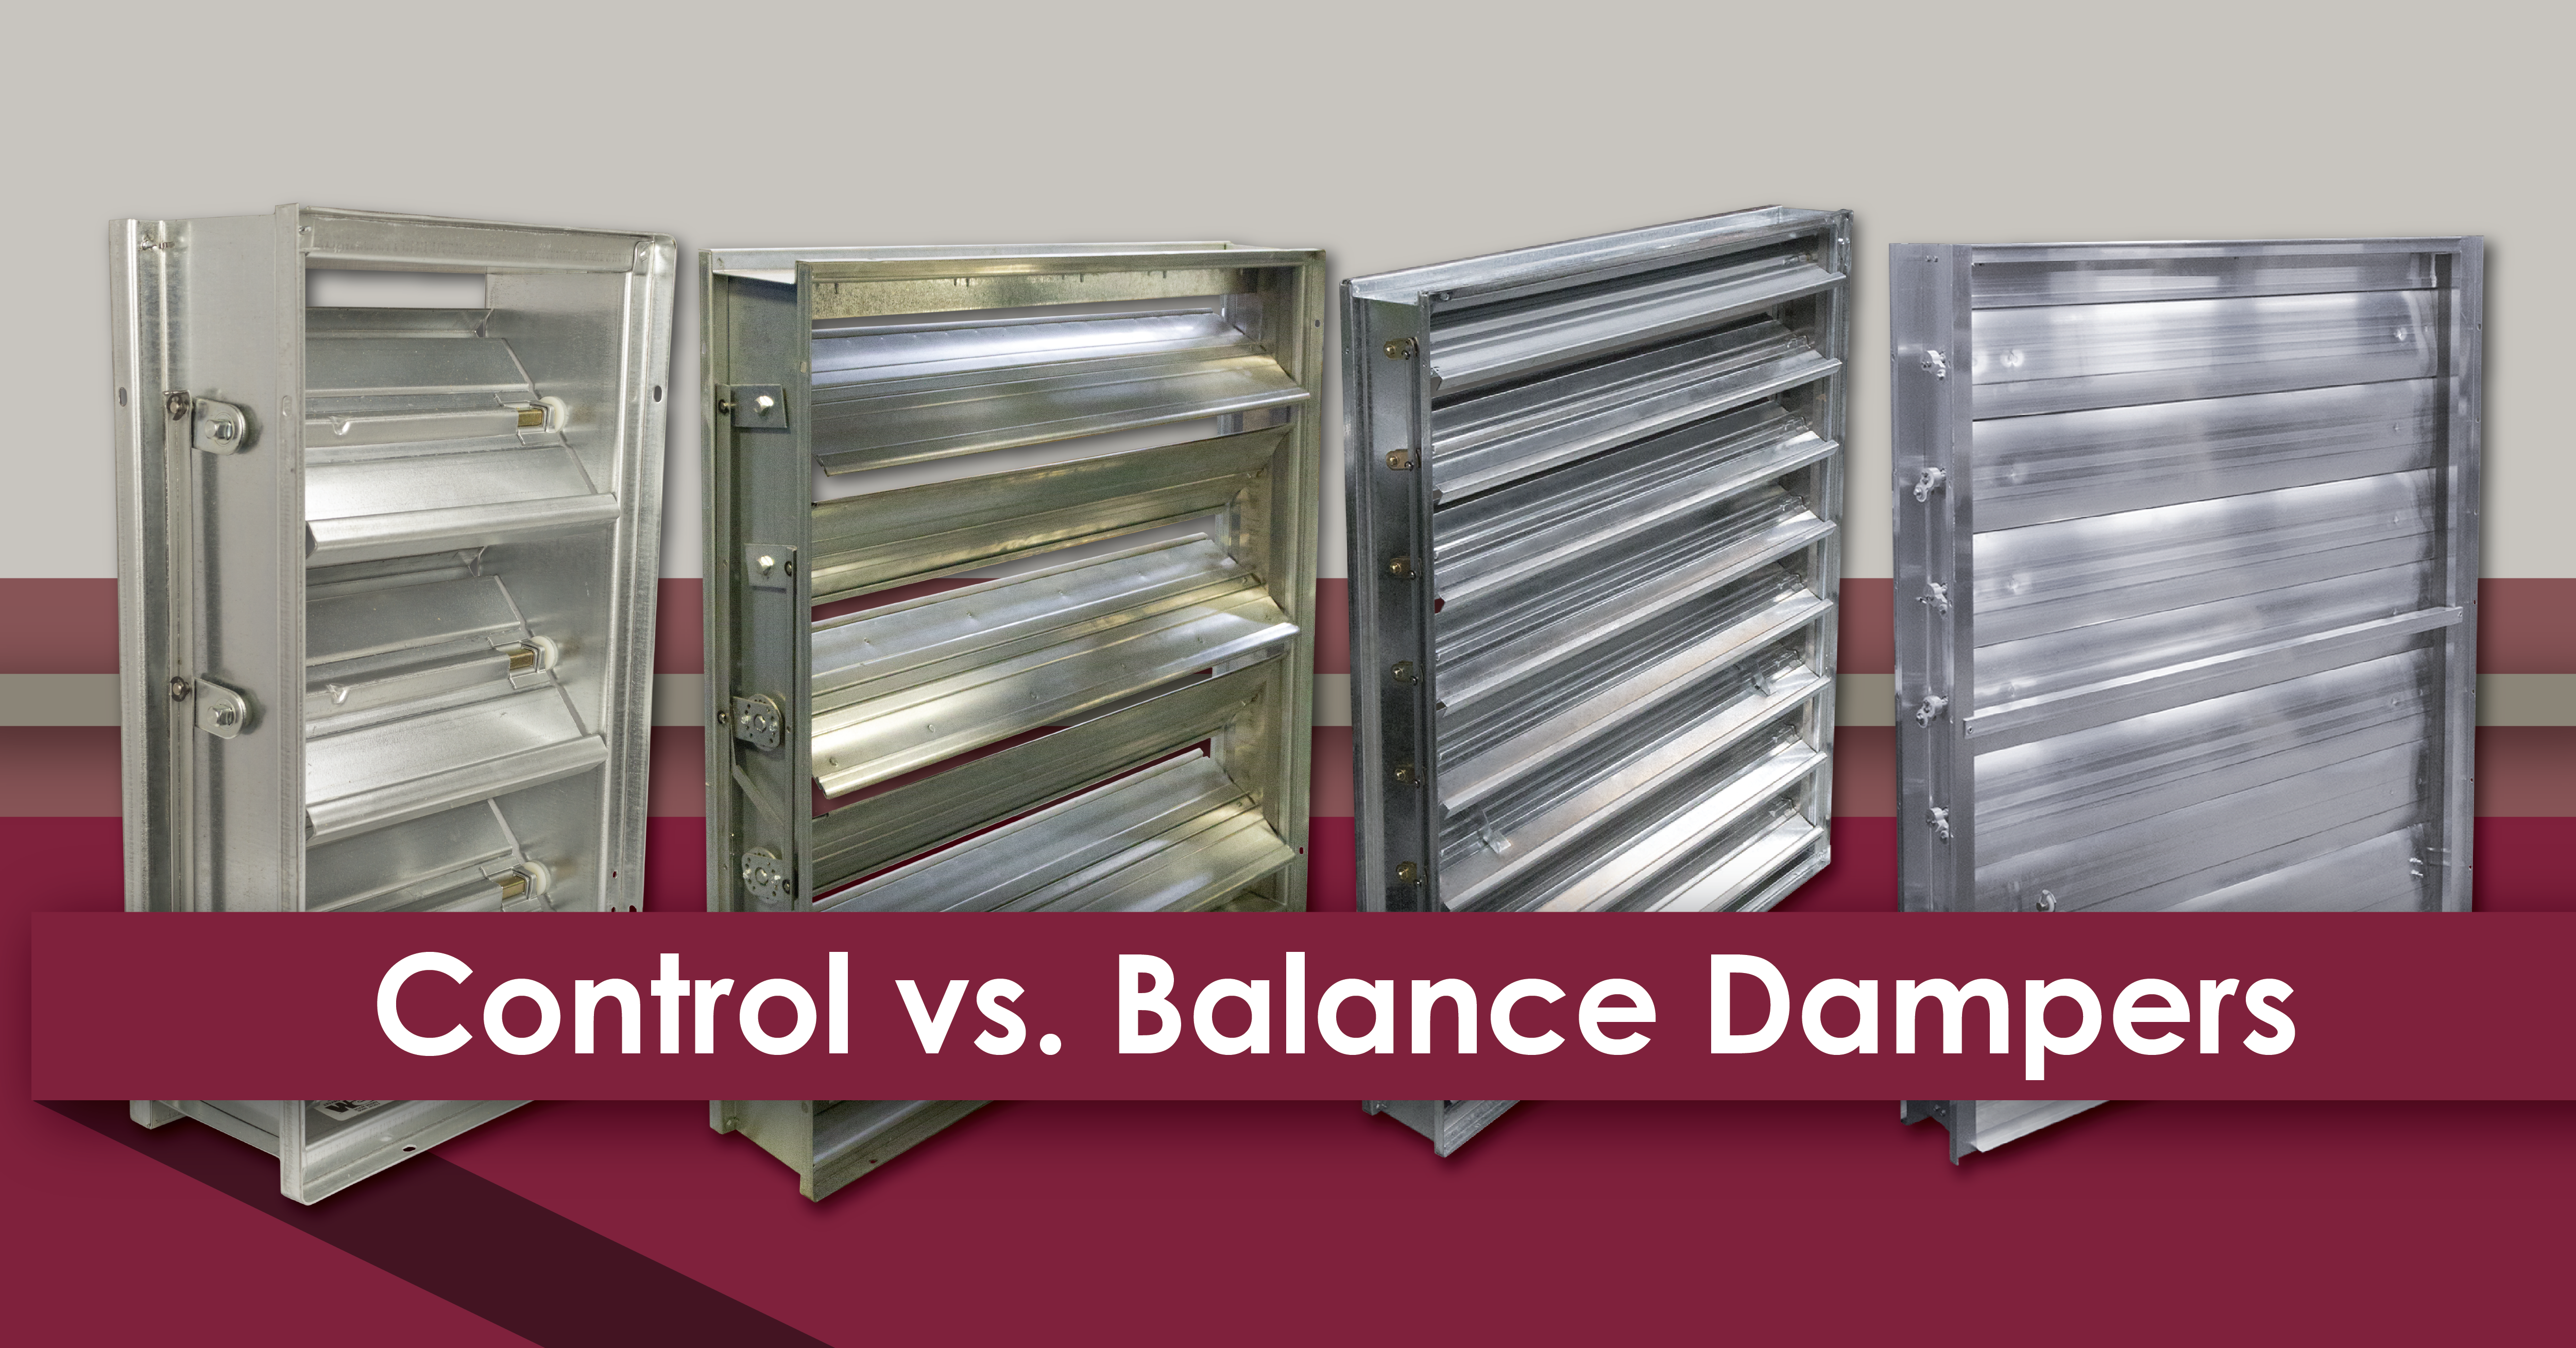 Control versus Balance - The Difference Between Dampers